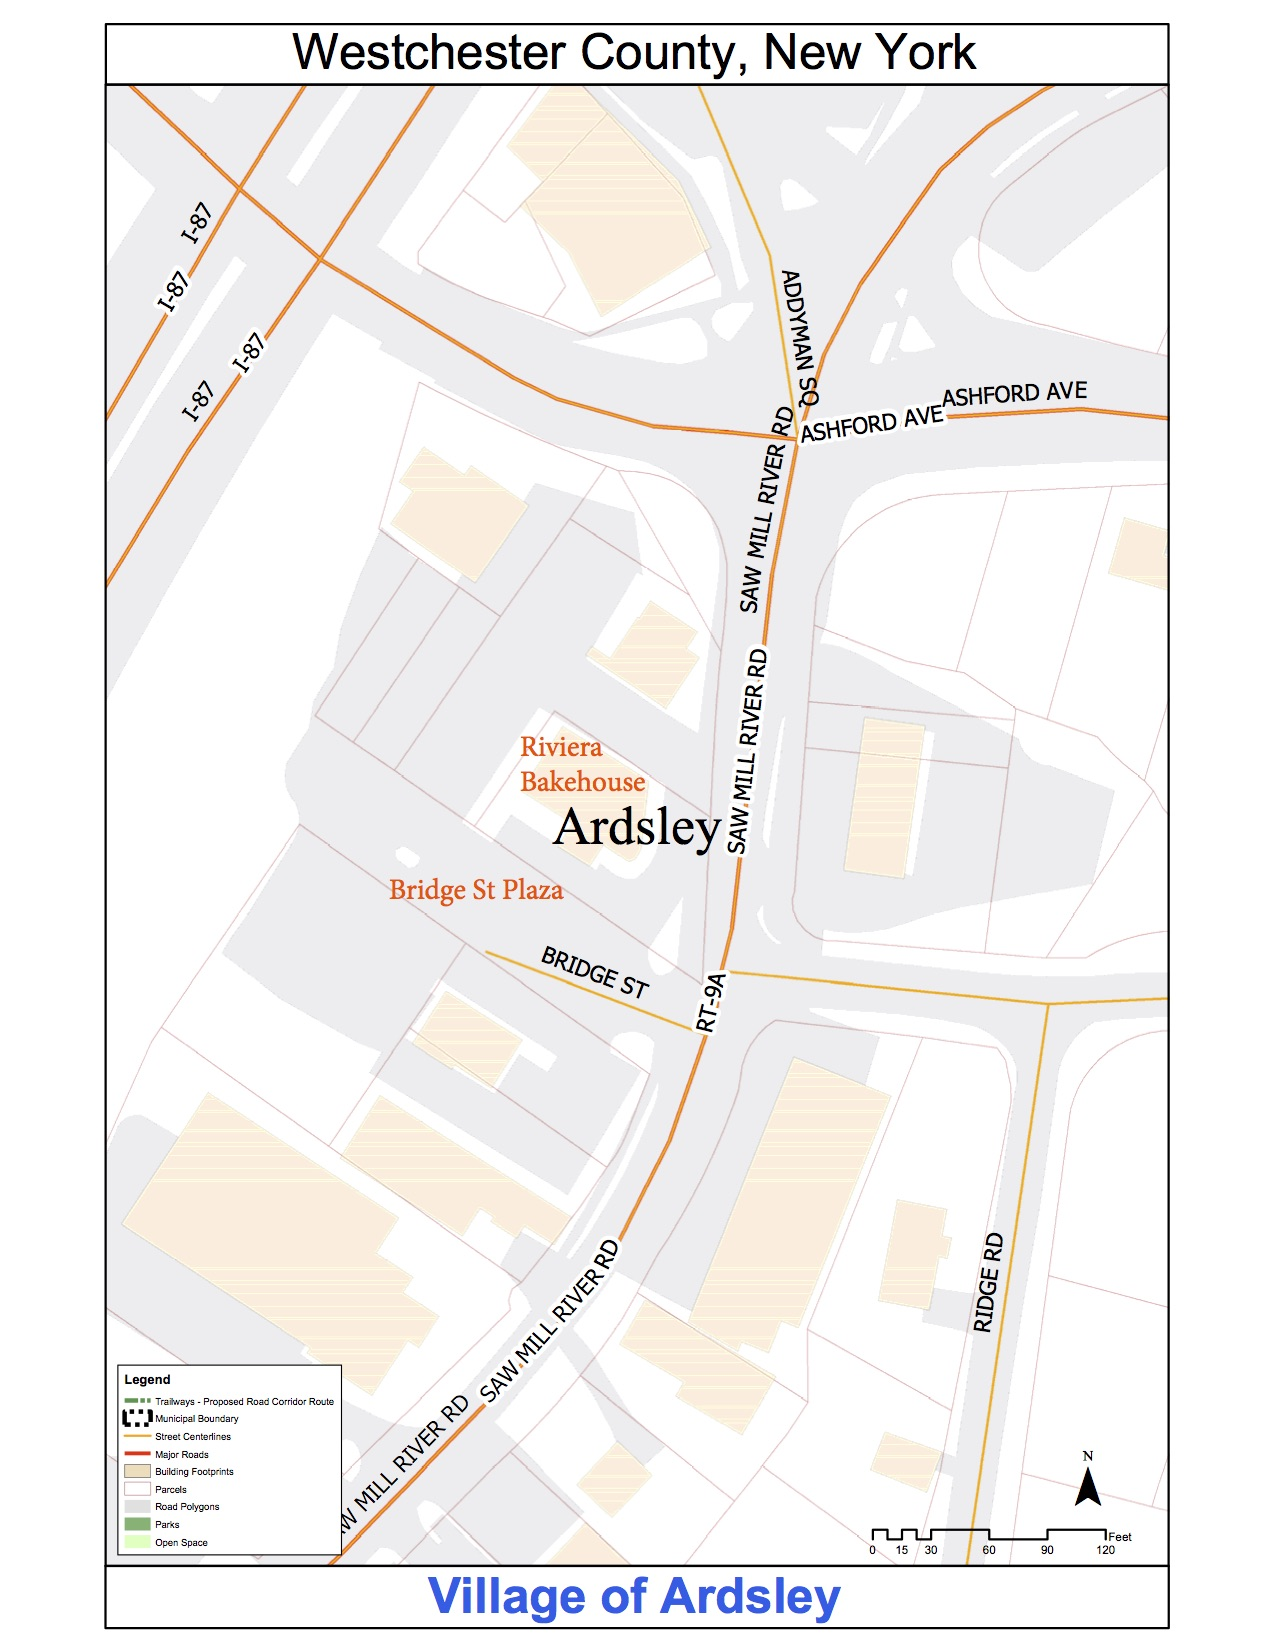 Map Image of Bridge Street Site in Ardsley